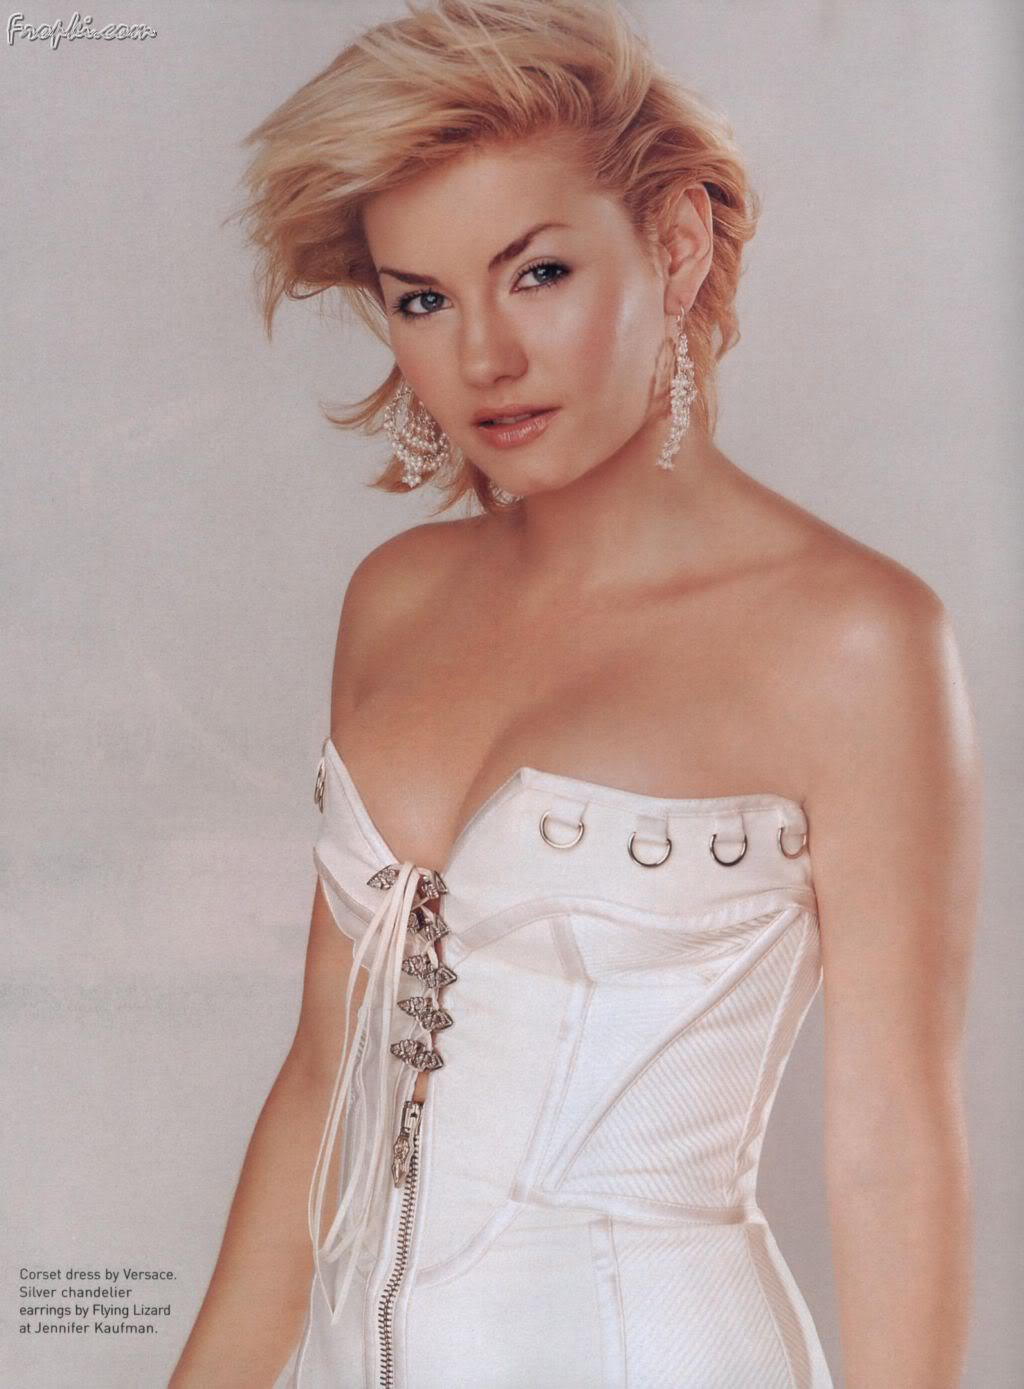 Elisha Cuthbert showcasing her Assets &#187; UniCelebs 5